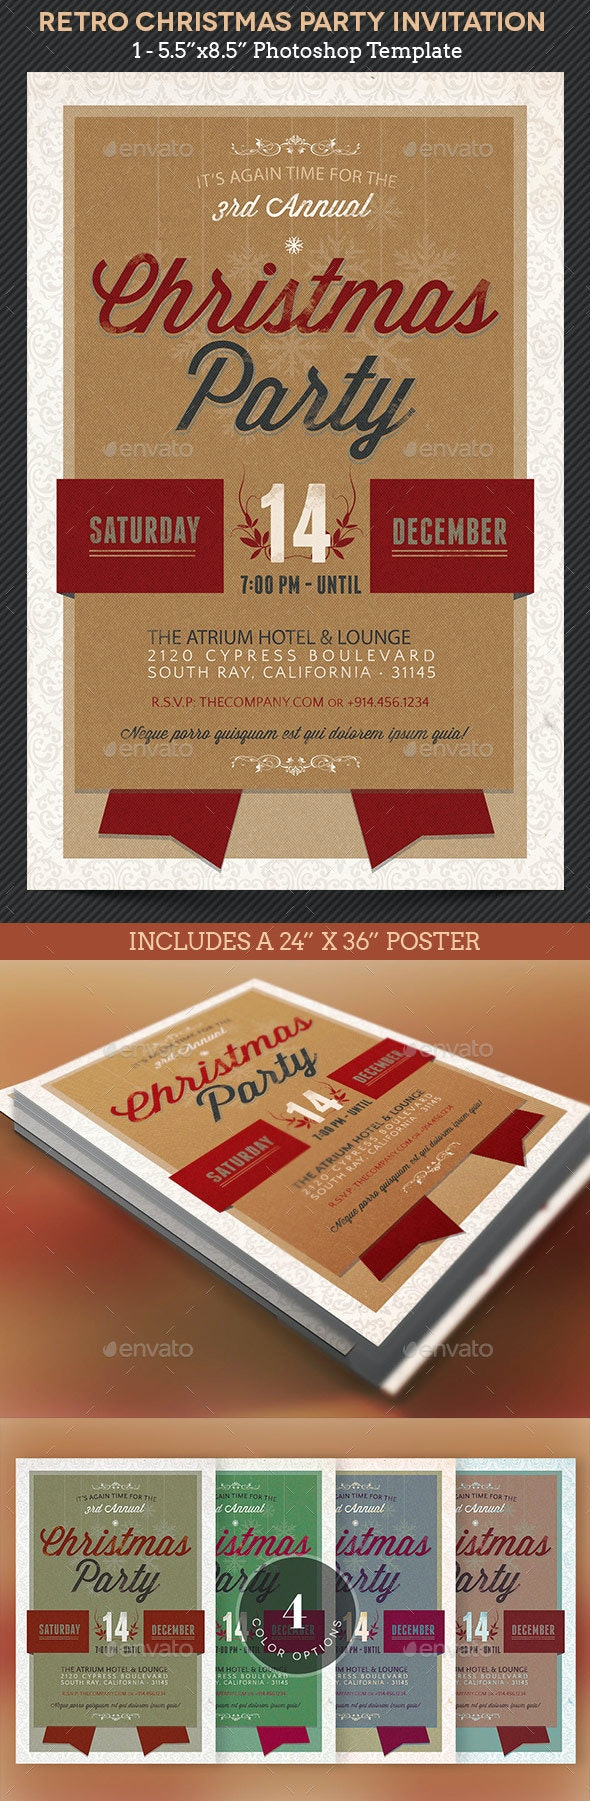 Retro Christmas Party Invitation Template - Holidays Events